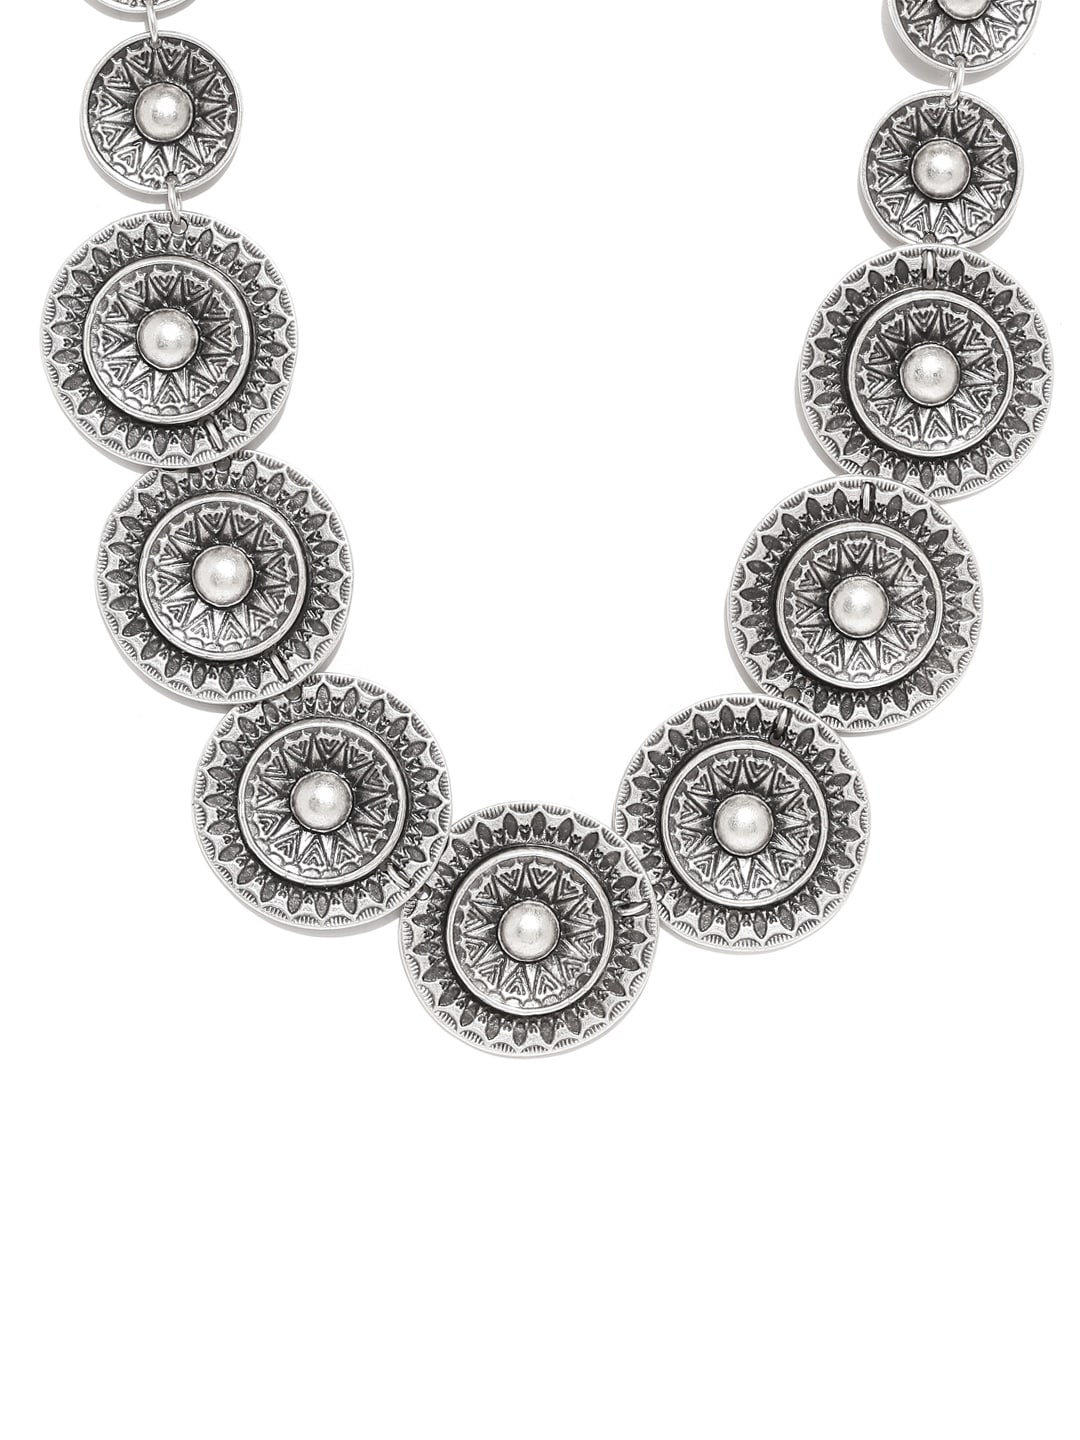 Thingalicious Oxidised Silver Plated Necklace Myntra Rs. 2550